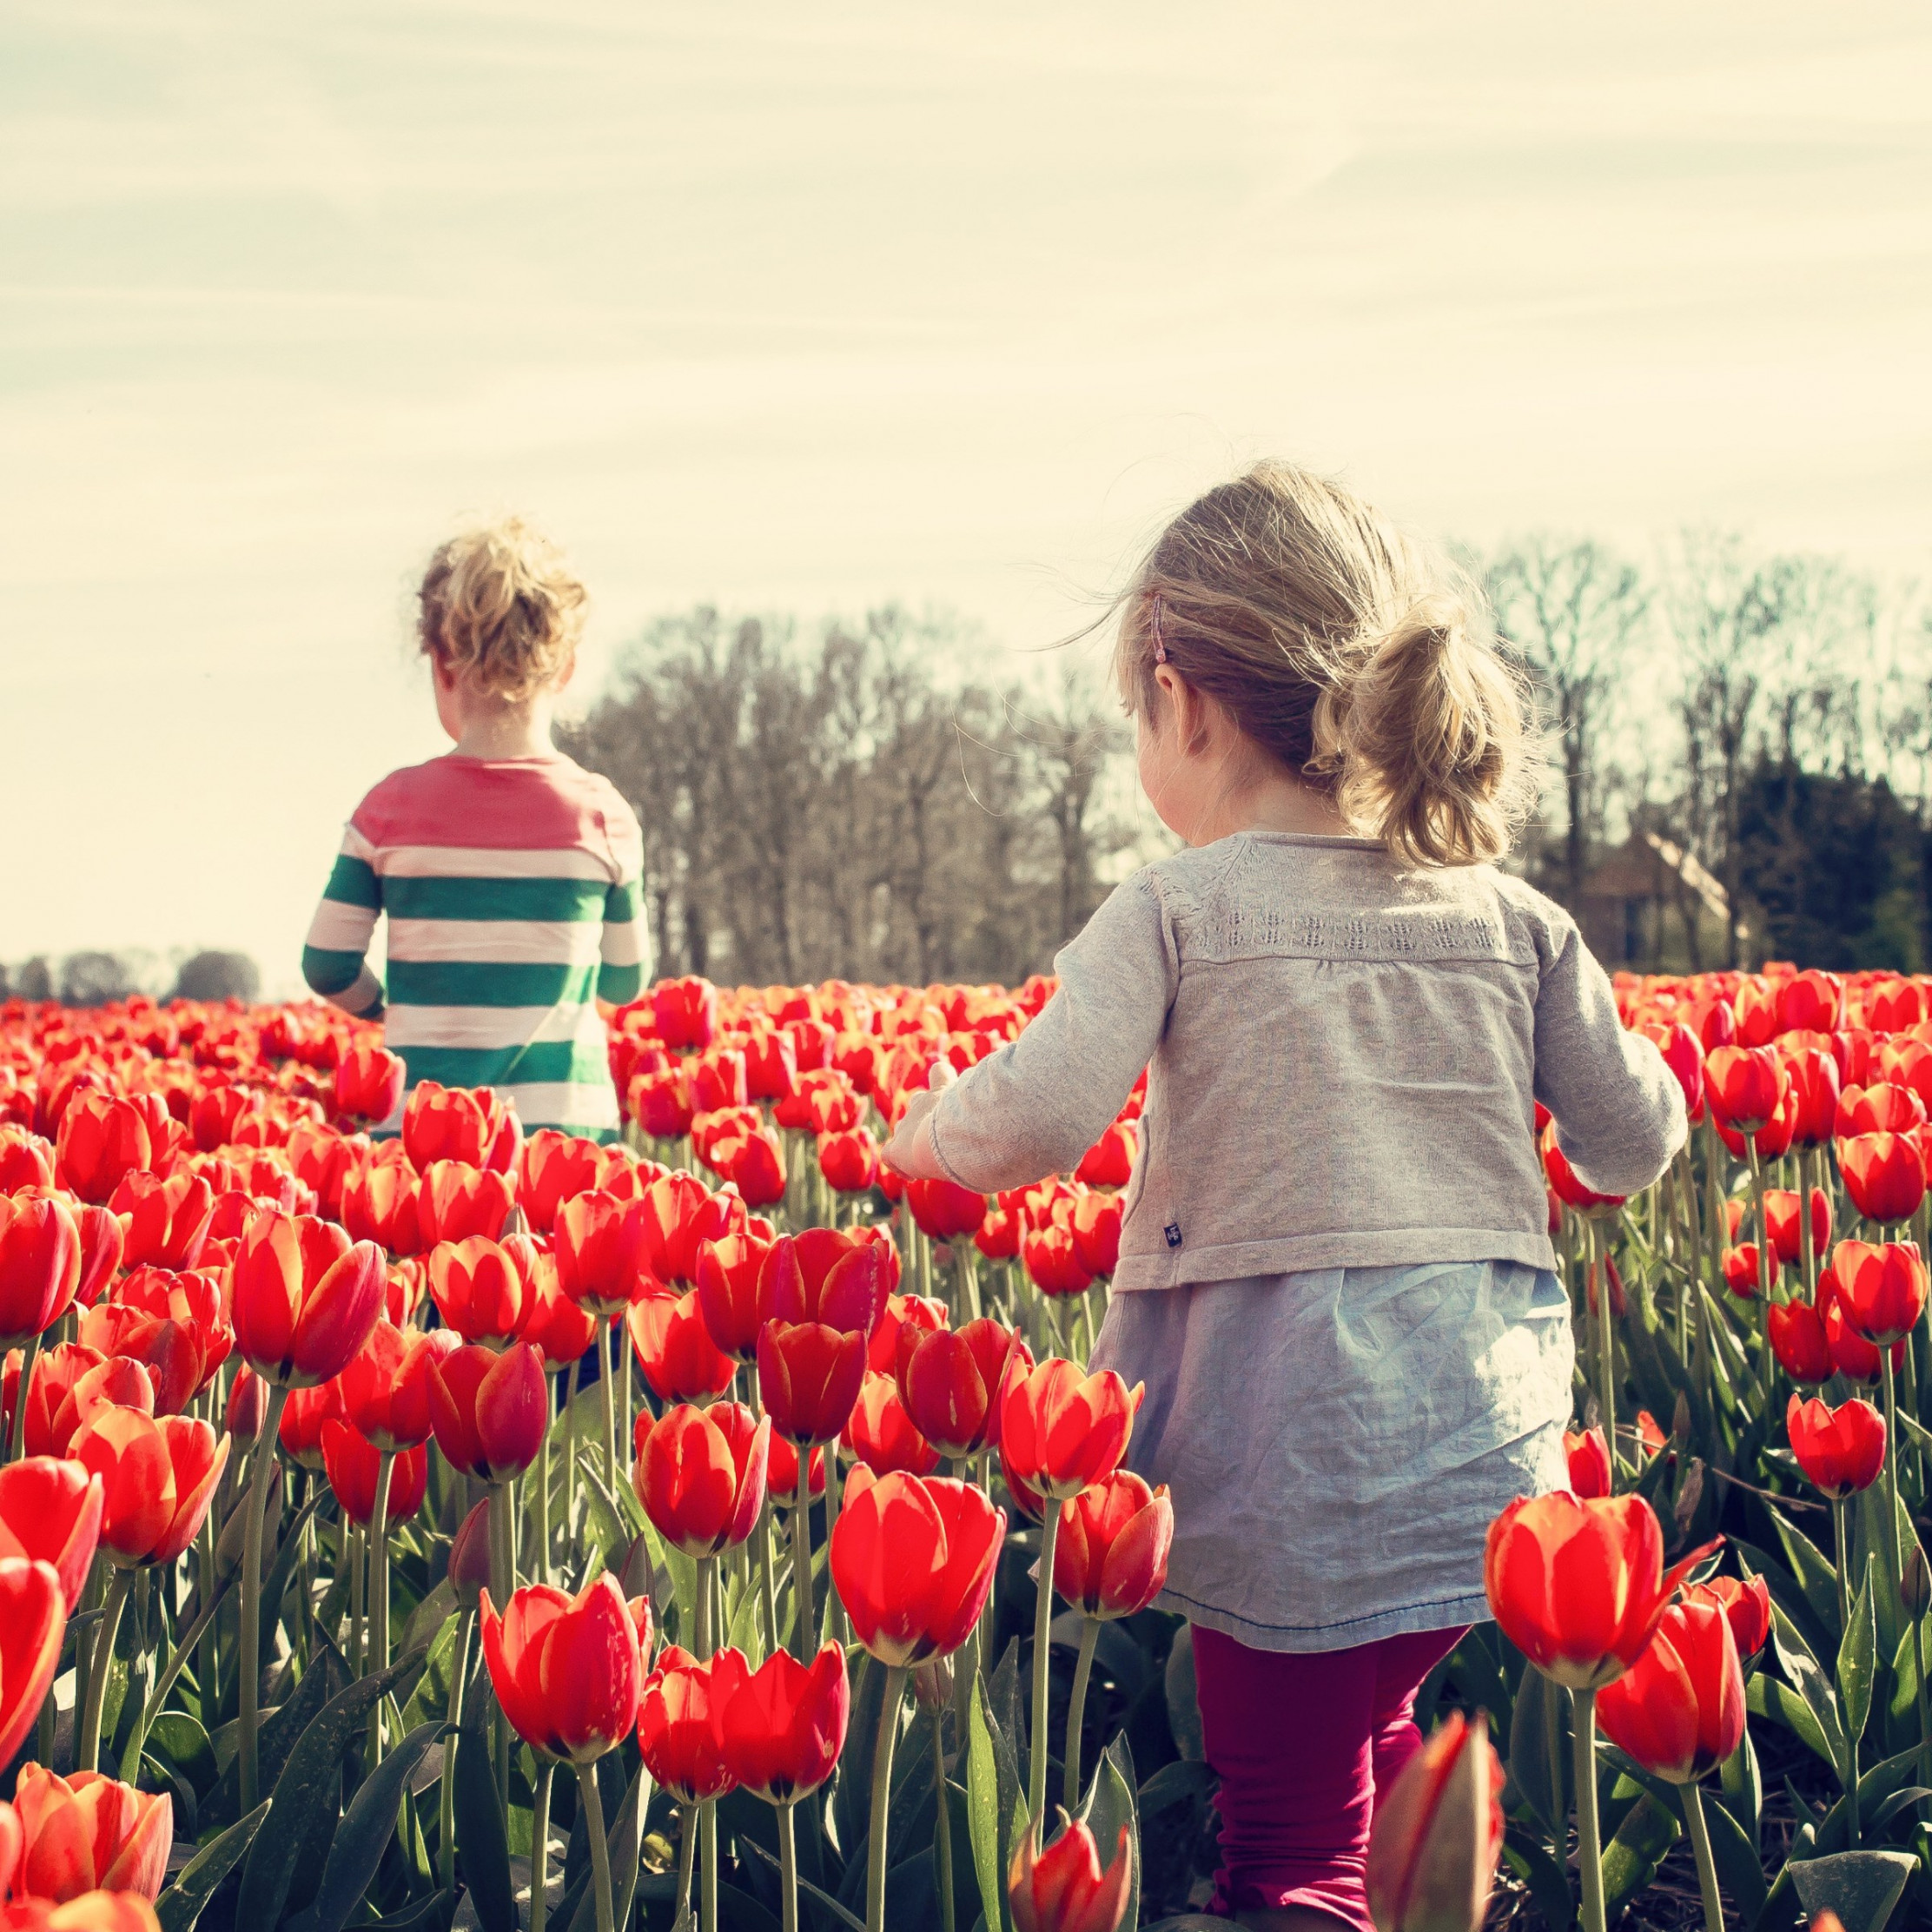 Children in the land with tulips | 2224x2224 wallpaper